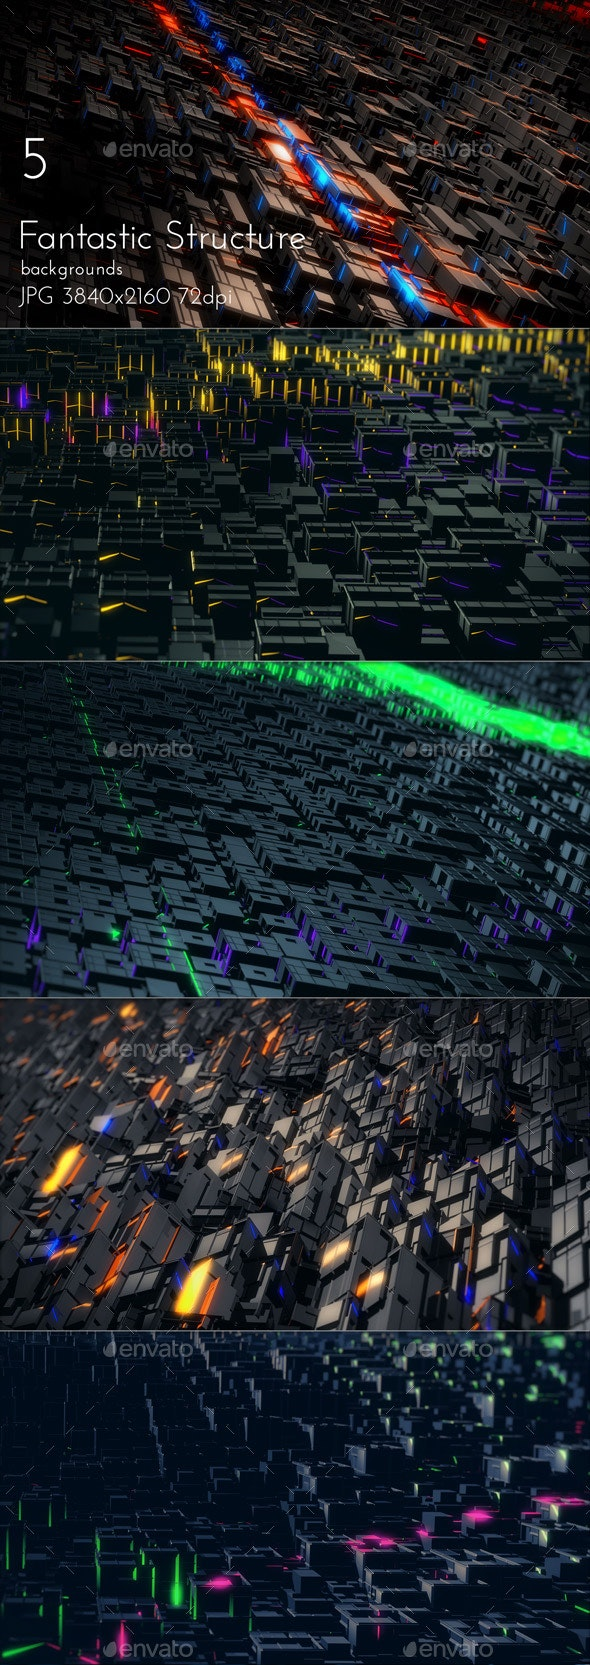 Fantastic Structure Abstract Background - Tech / Futuristic Backgrounds